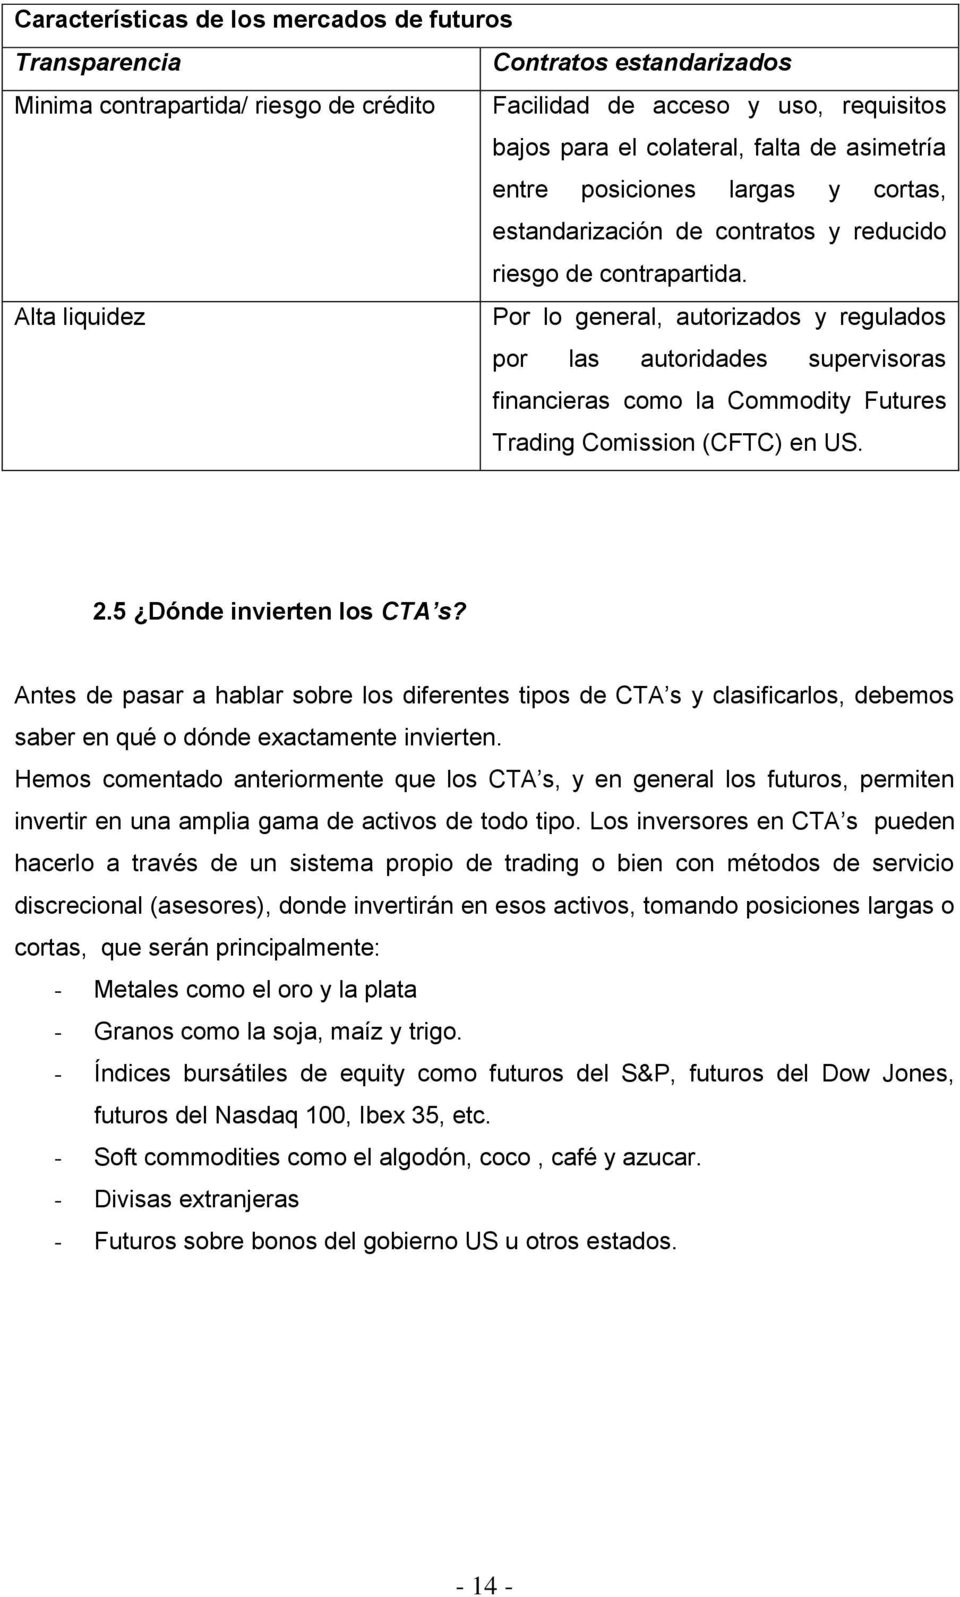 Alta liquidez Por lo general, autorizados y regulados por las autoridades supervisoras financieras como la Commodity Futures Trading Comission (CFTC) en US. 2.5 Dónde invierten los CTA s?